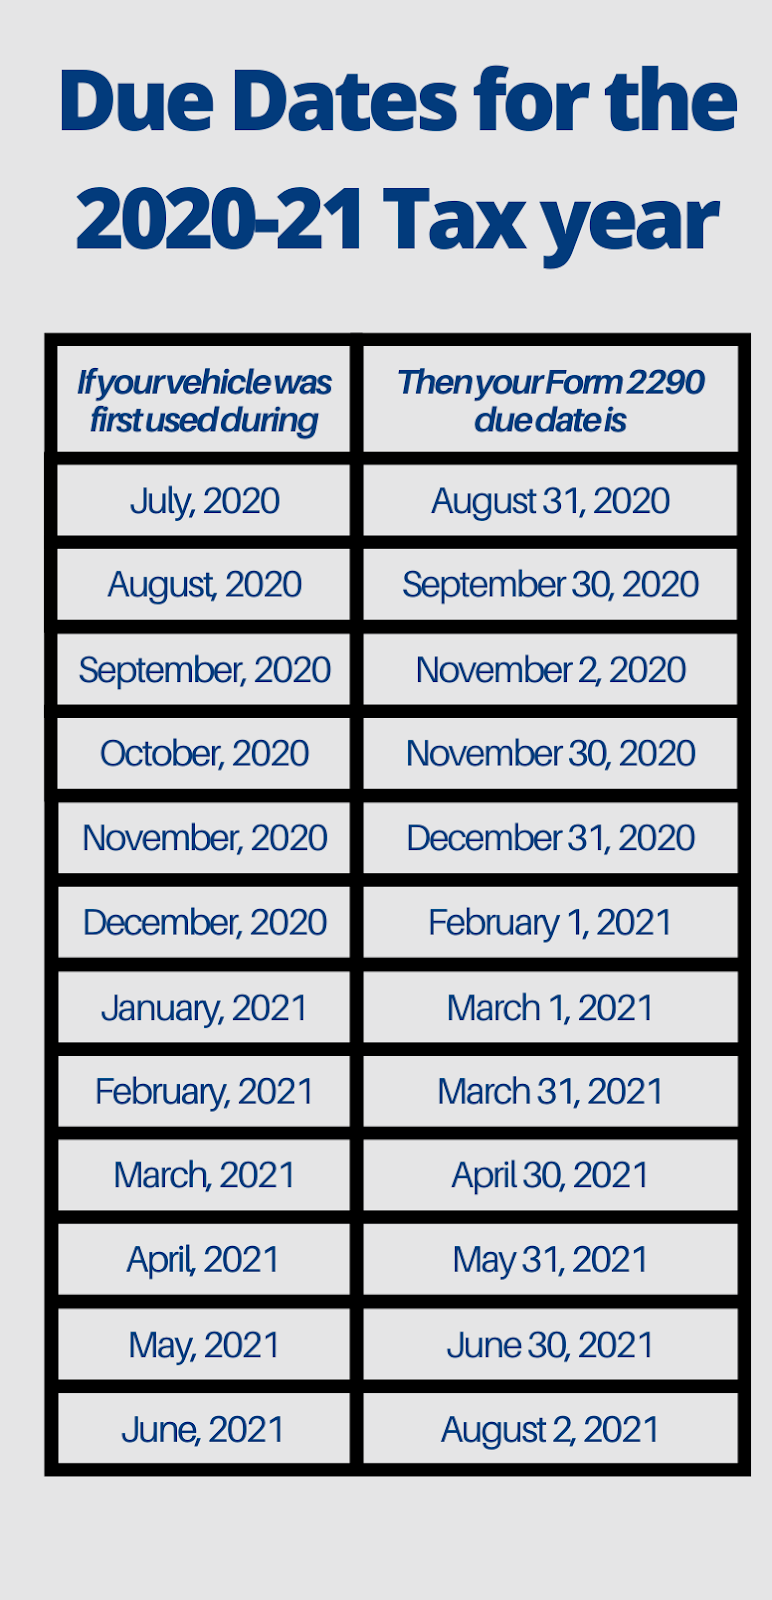 due date for filing form 2290 for 2020-2021 tax period